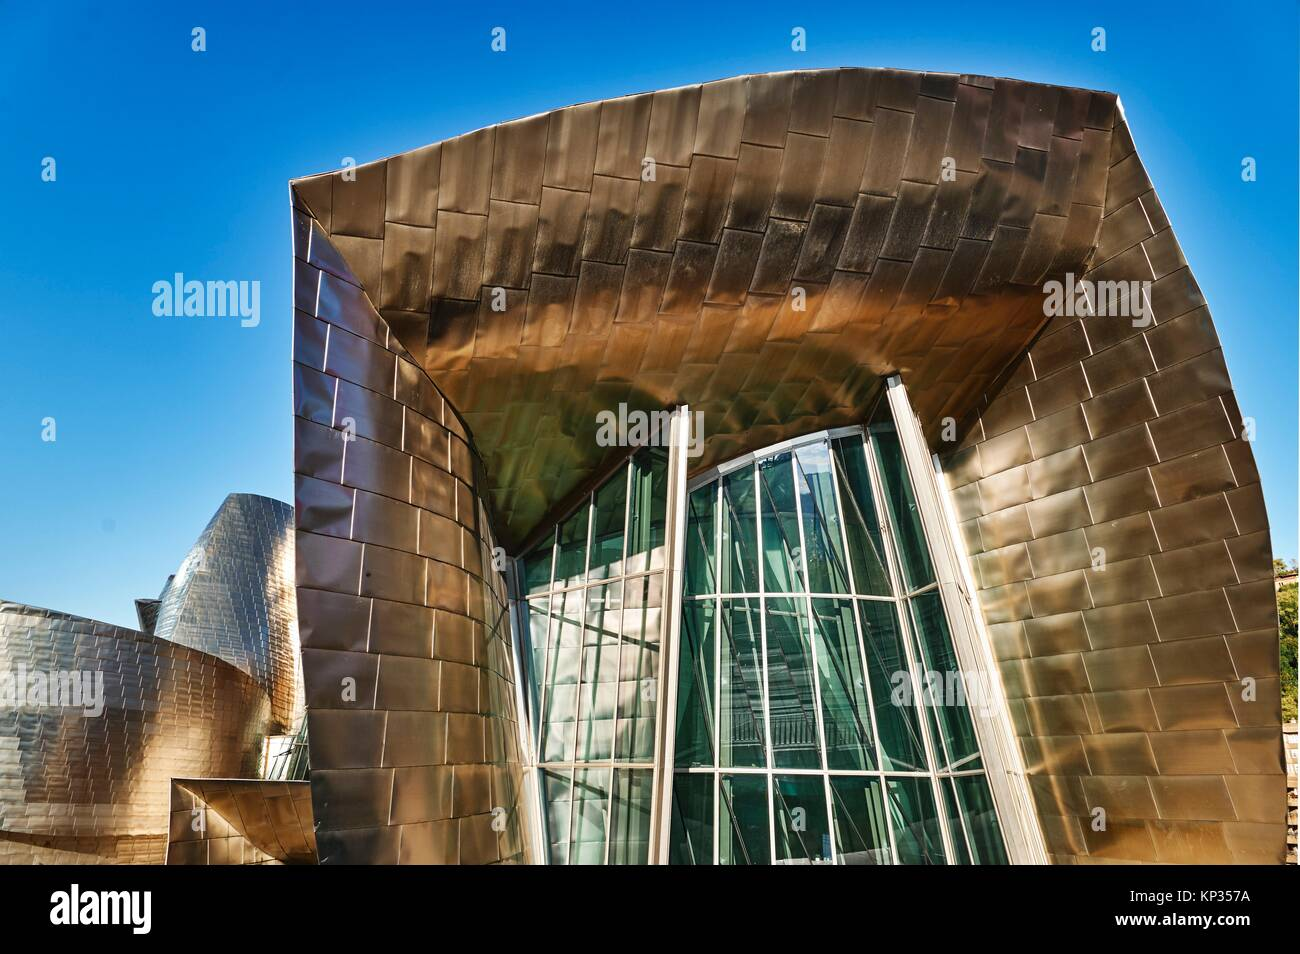 The Guggenheim Museum by Frank Gehry. Bilbao, Basque Country, Spain - Stock Image